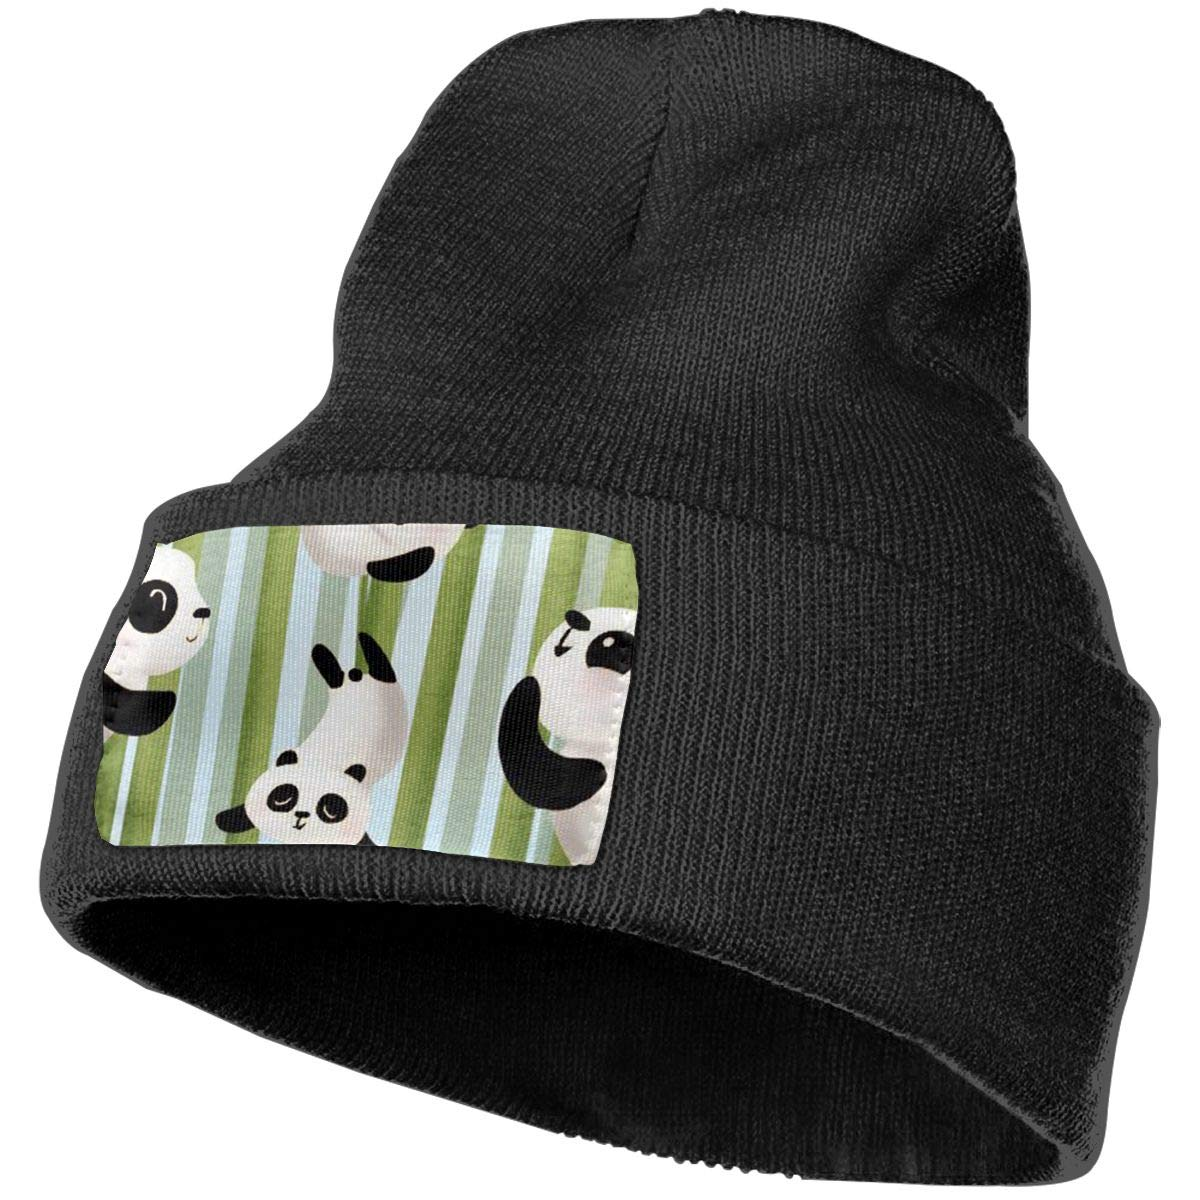 100/% Acrylic Acid Mas Beanie Hat Ruin Bamboo Panda Fashion Knitting Hat for Men Women